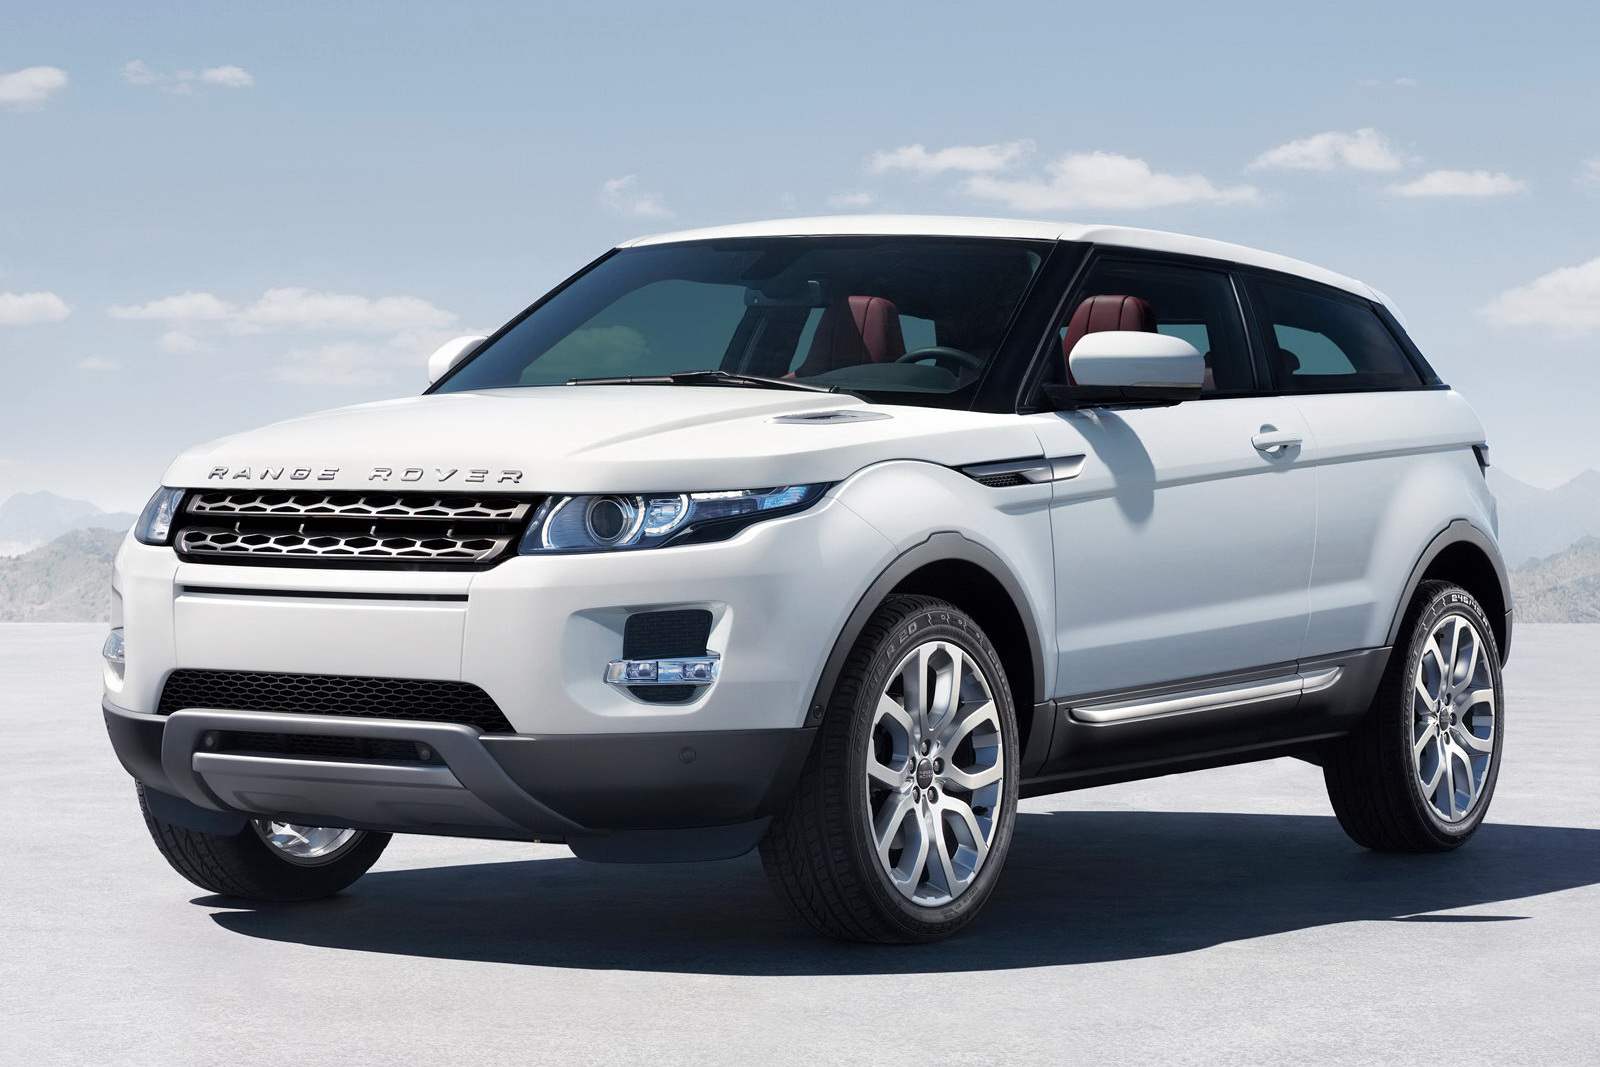 2014 Range Rover Evoque Gets Nine-Speed Automatic